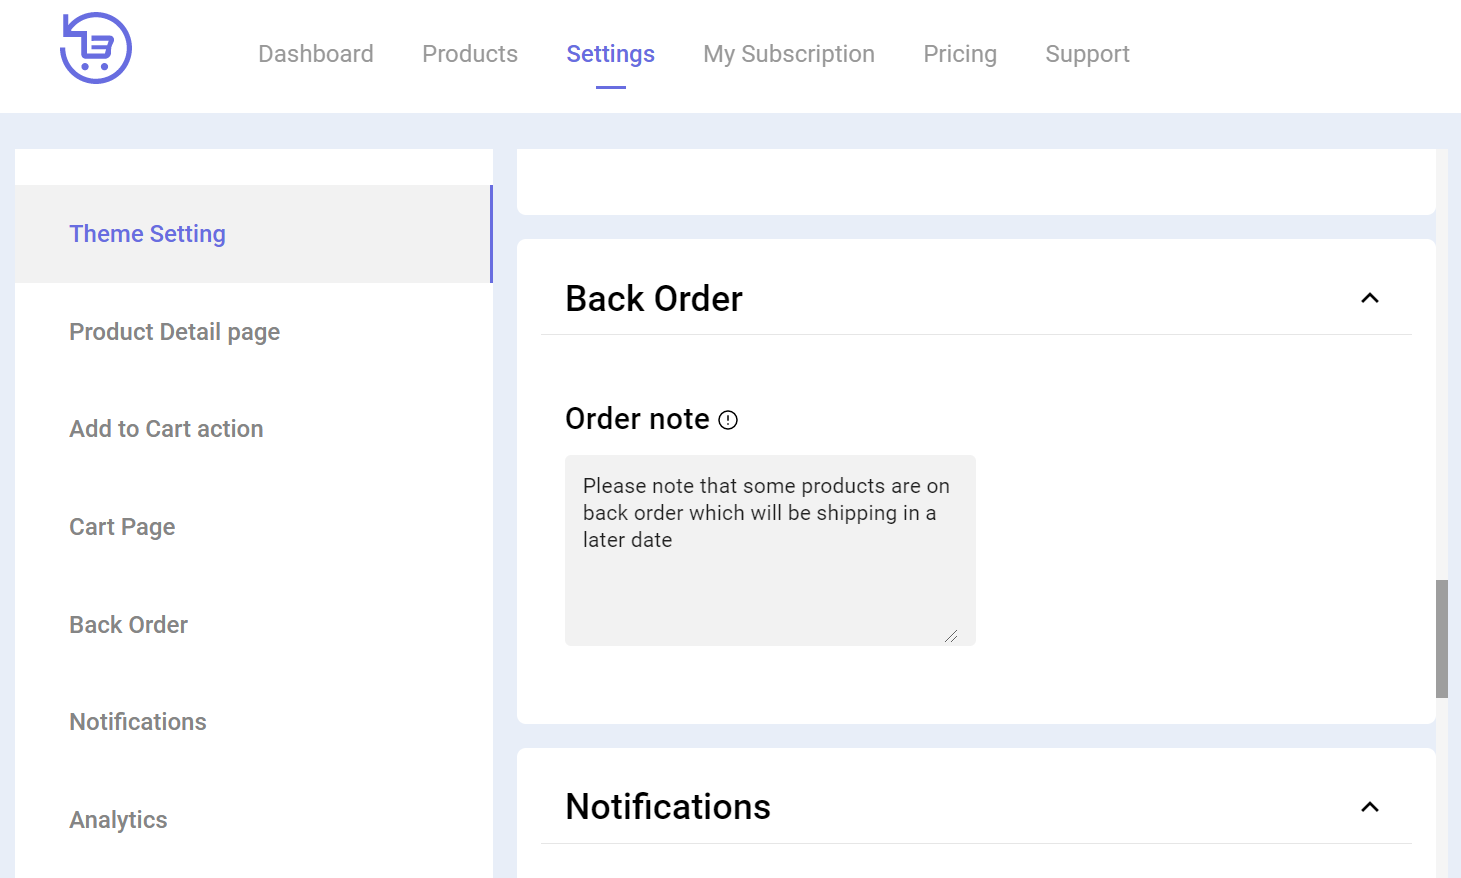 note-for-backordered-items